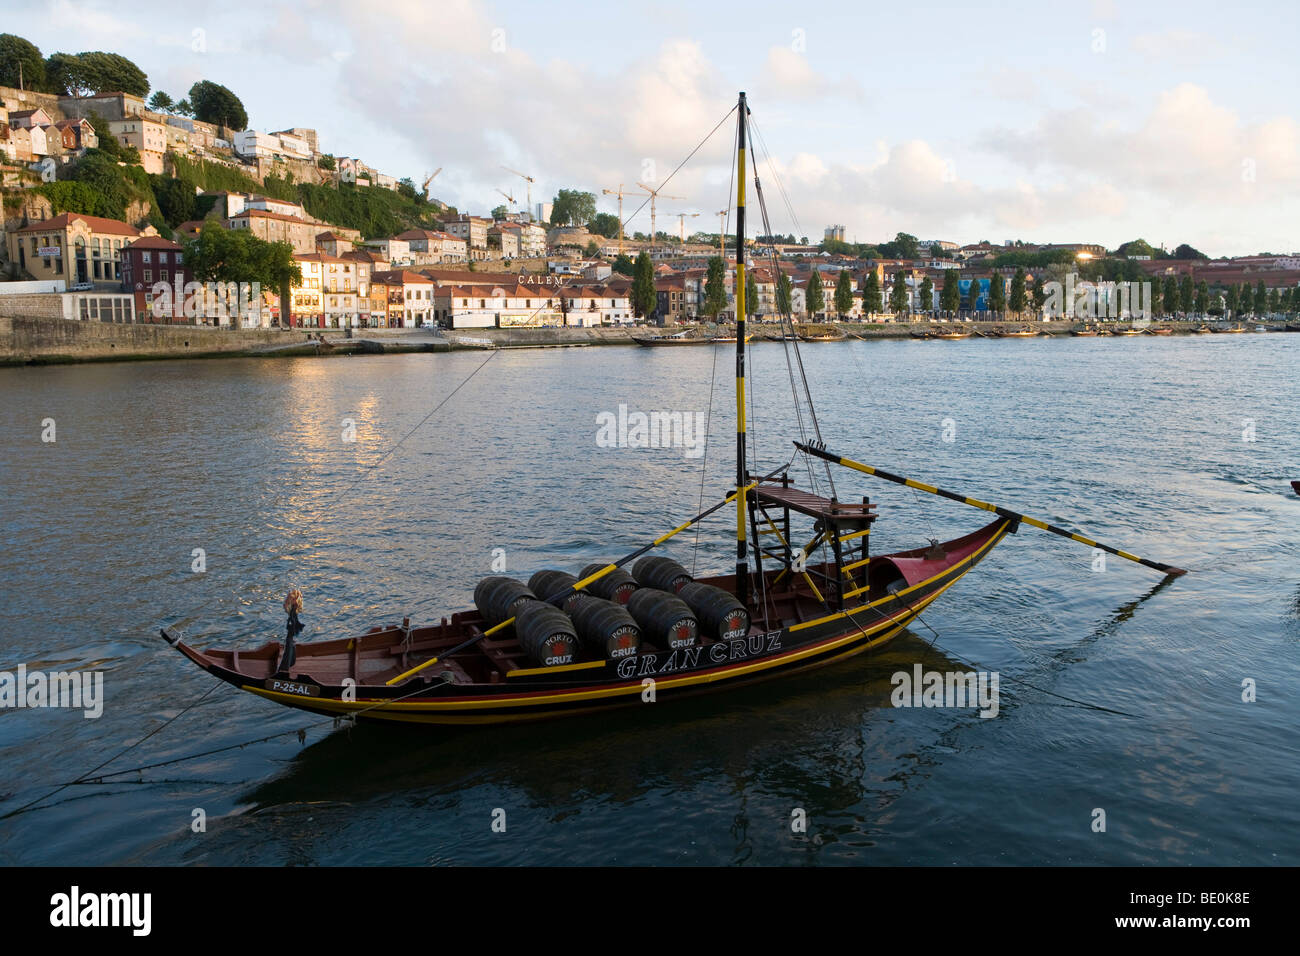 Typical Rabelo boat on the Douro river, Porto, Portugal, Europe Stock Photo